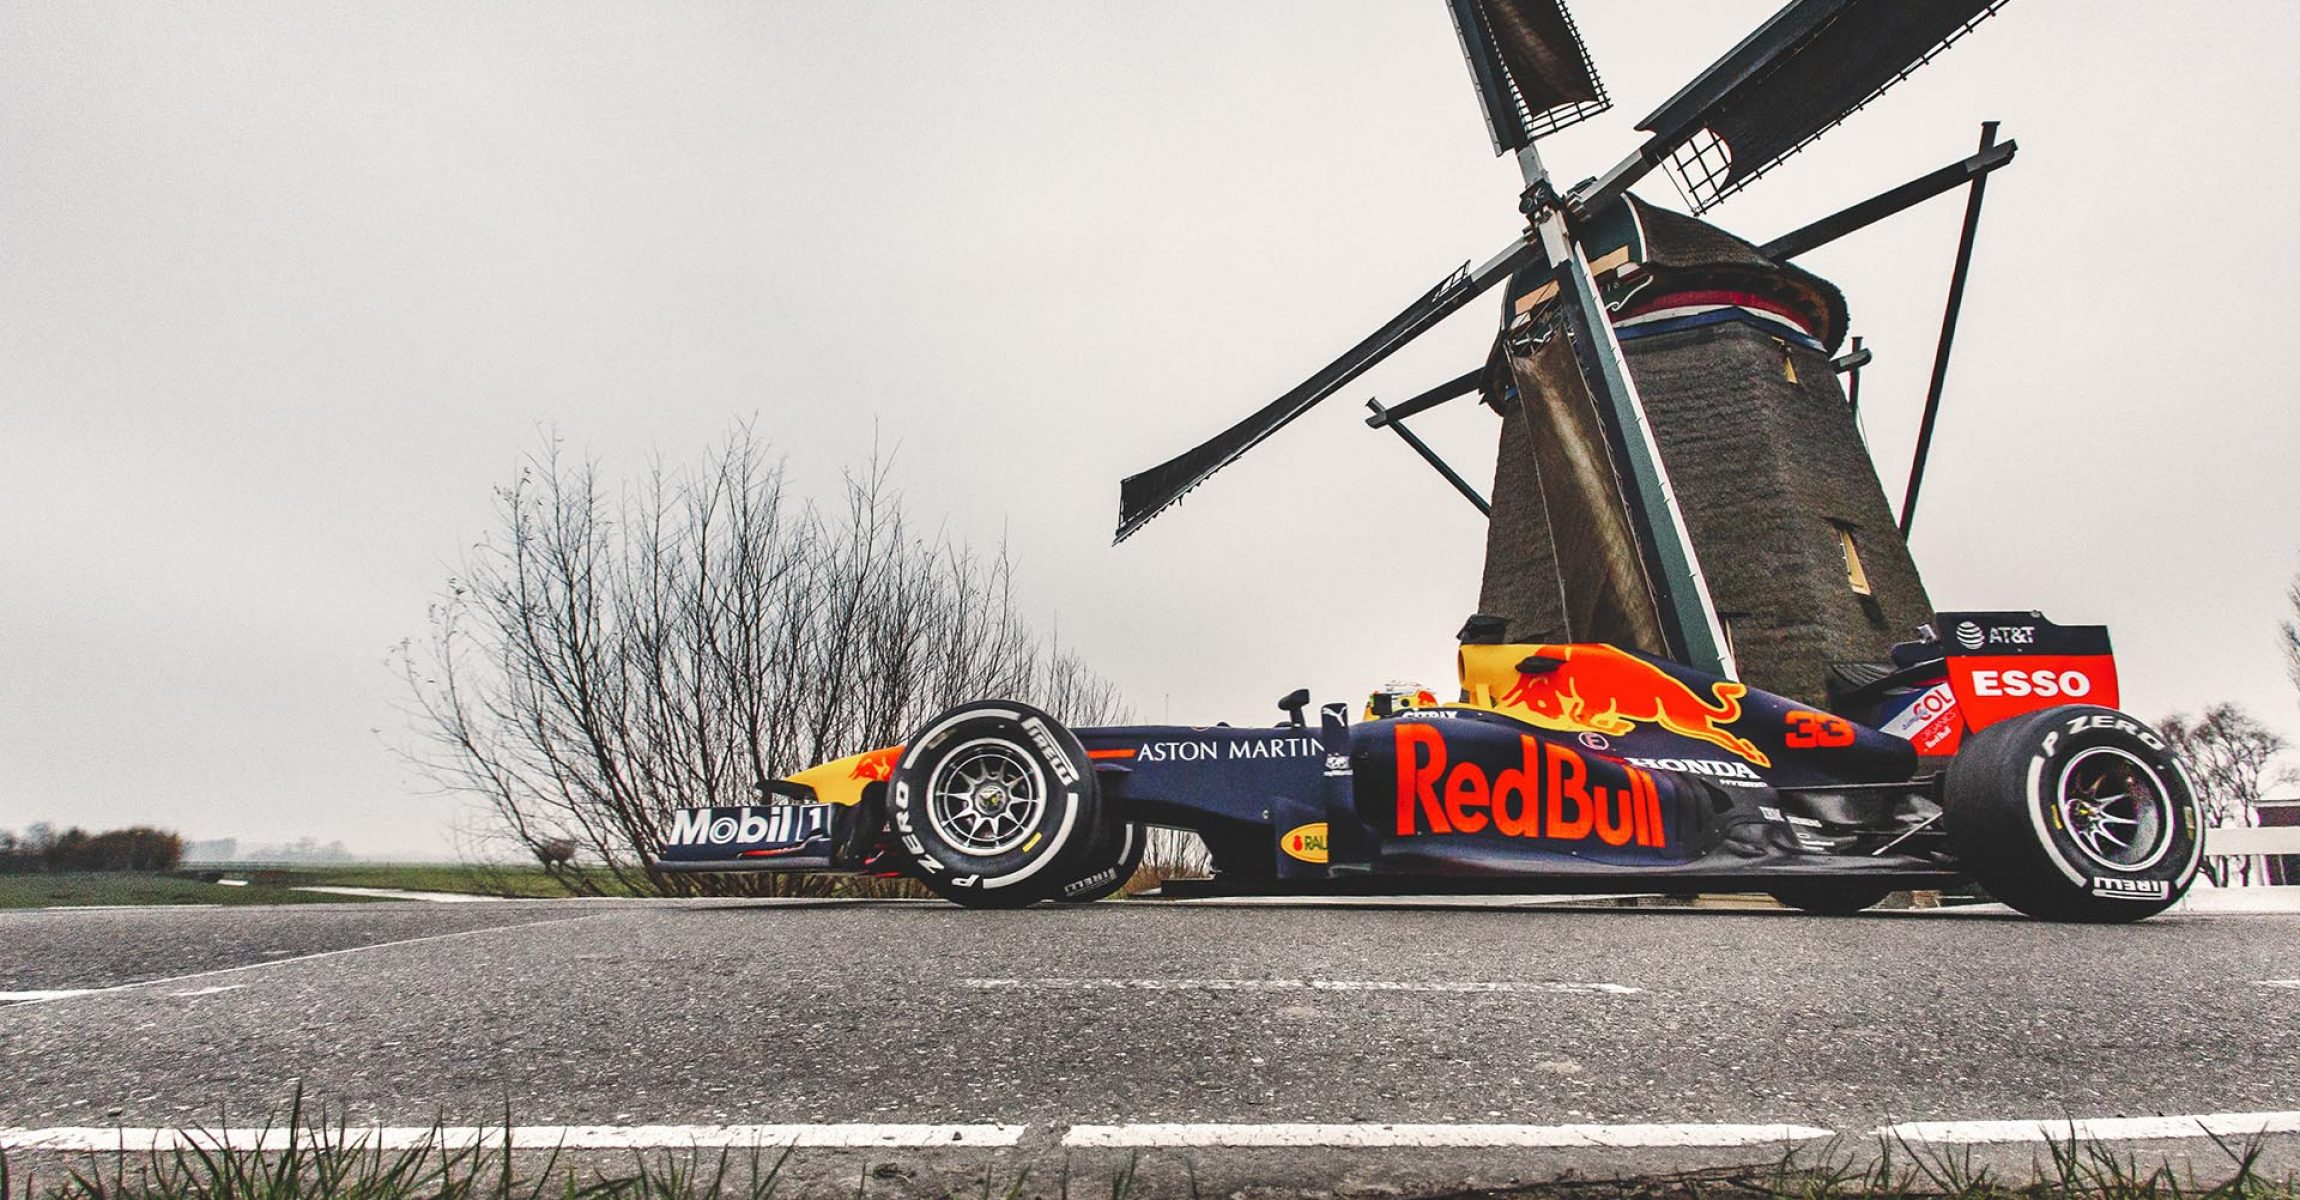 Max Verstappen performs during The Dutch Road Trip in Maasland, Netherlands on January 25, 2020 // Rutger Pauw / Red Bull Content Pool // AP-23Q7EYB651W11 // Usage for editorial use only //